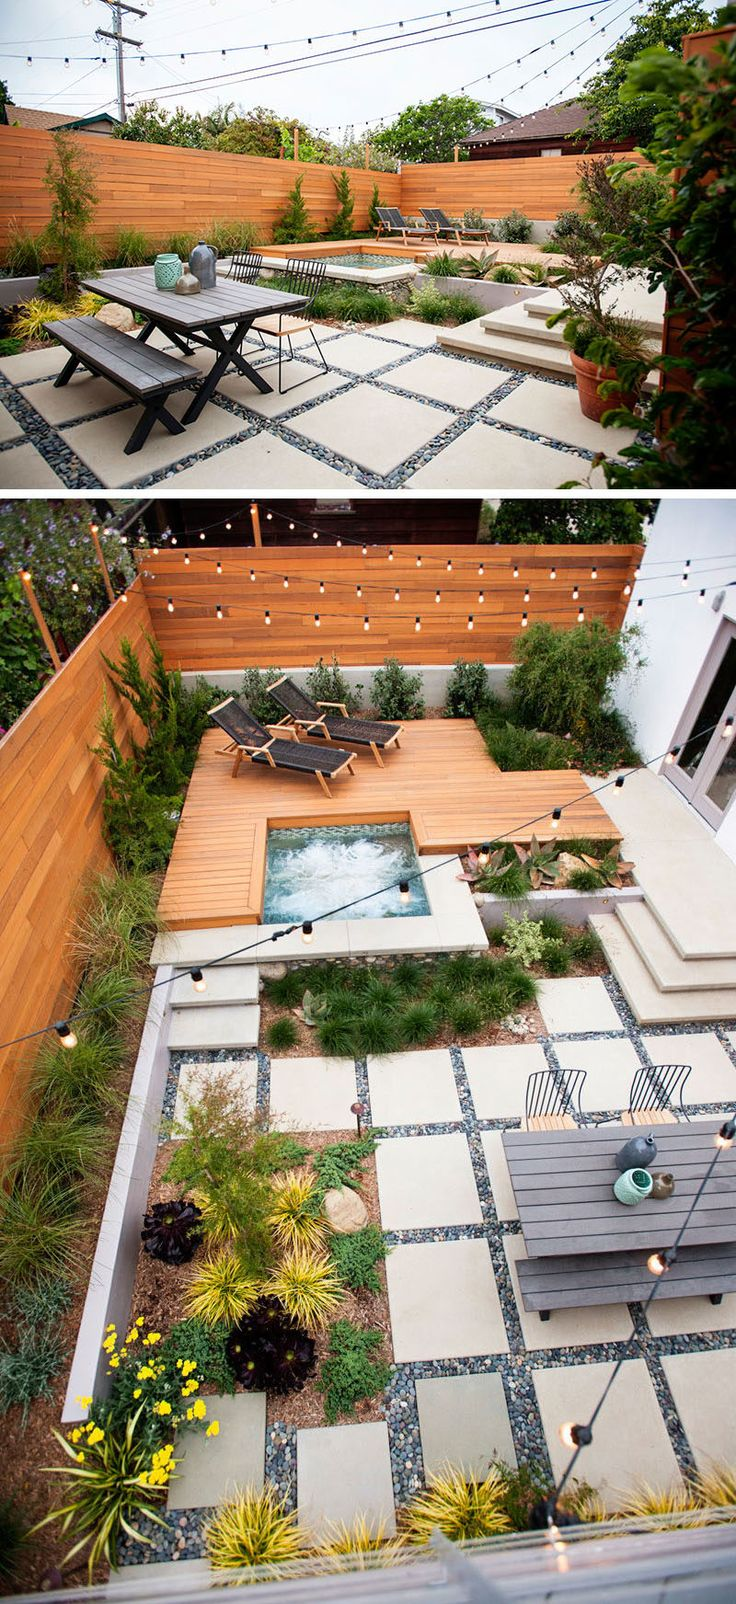 Funky backyard garden ideas - Landscaping Design Ideas 11 Backyards Designed For Entertaining